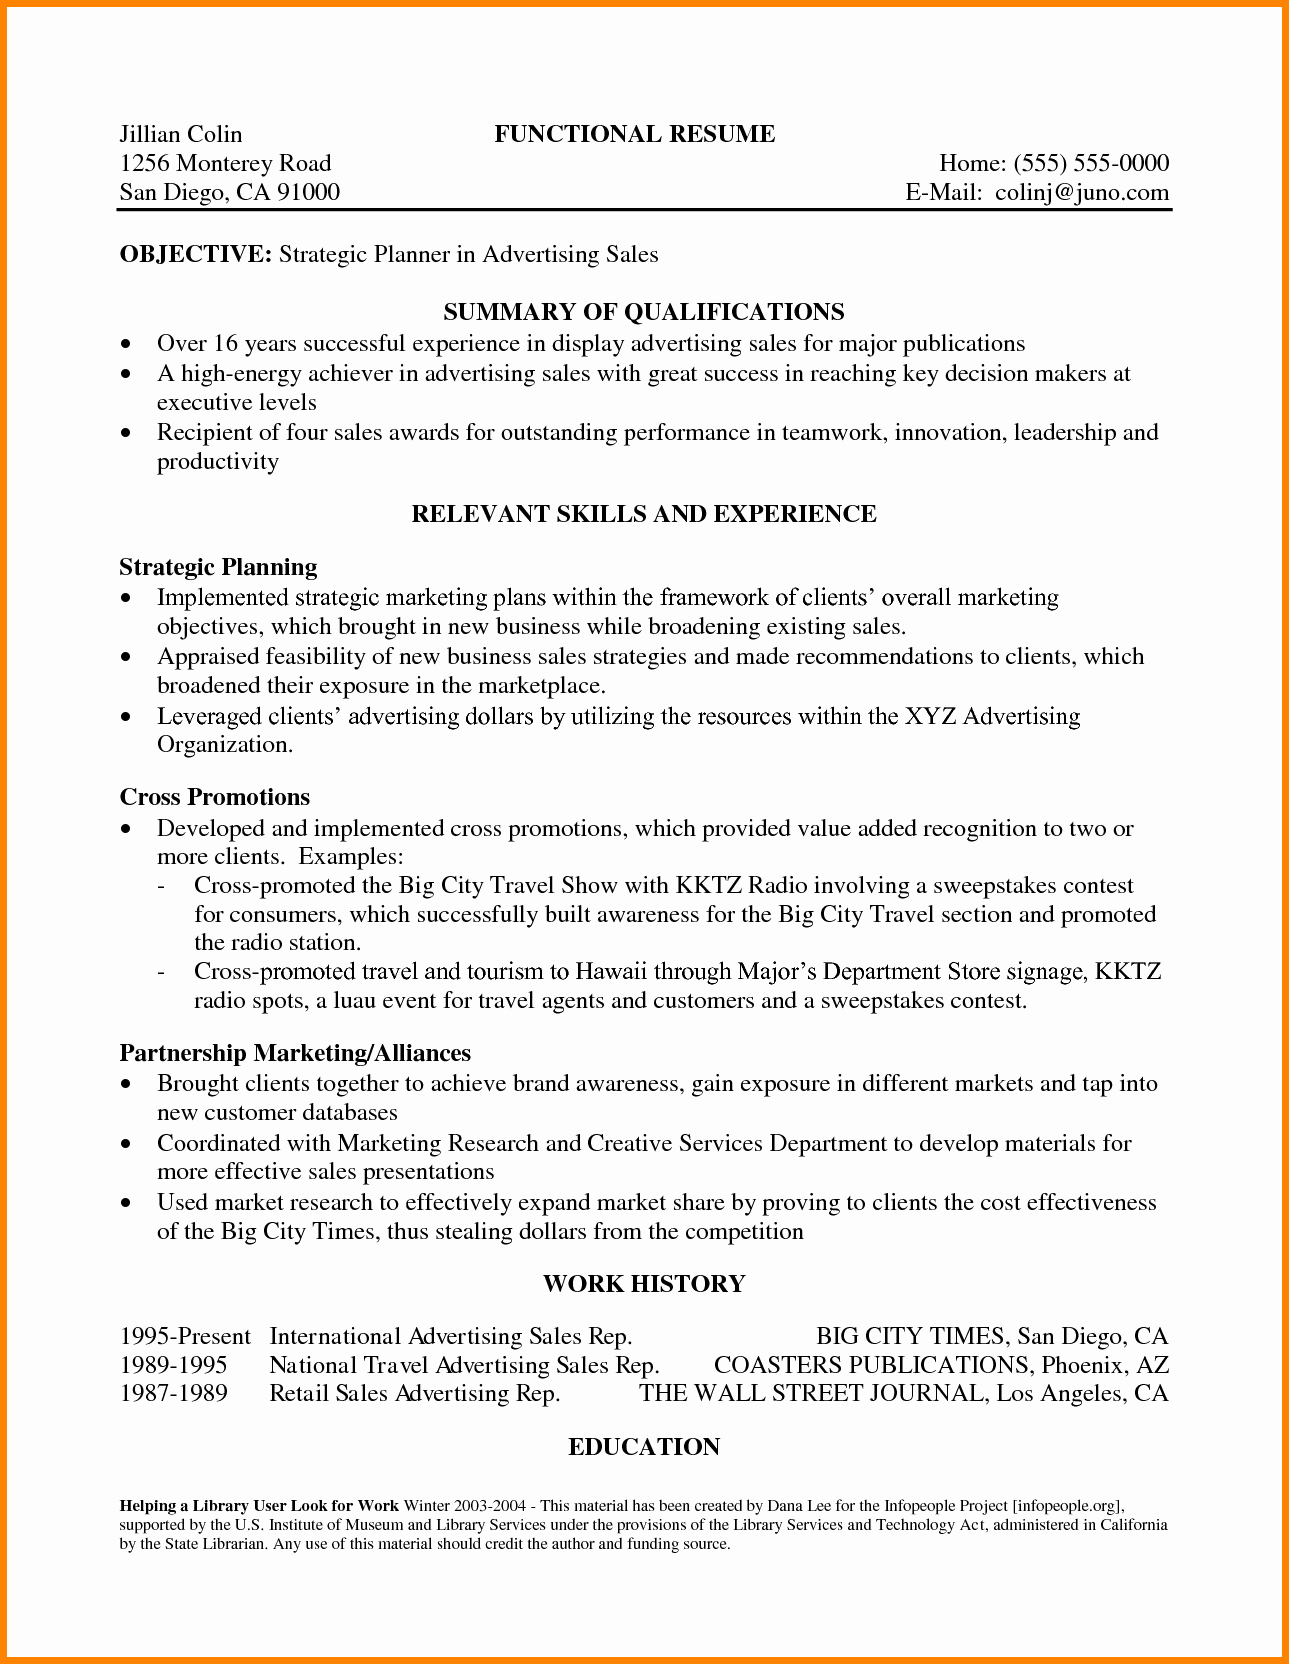 Statement Of Qualifications Template Free Best Of 8 Statement Of Qualifications Sample Template